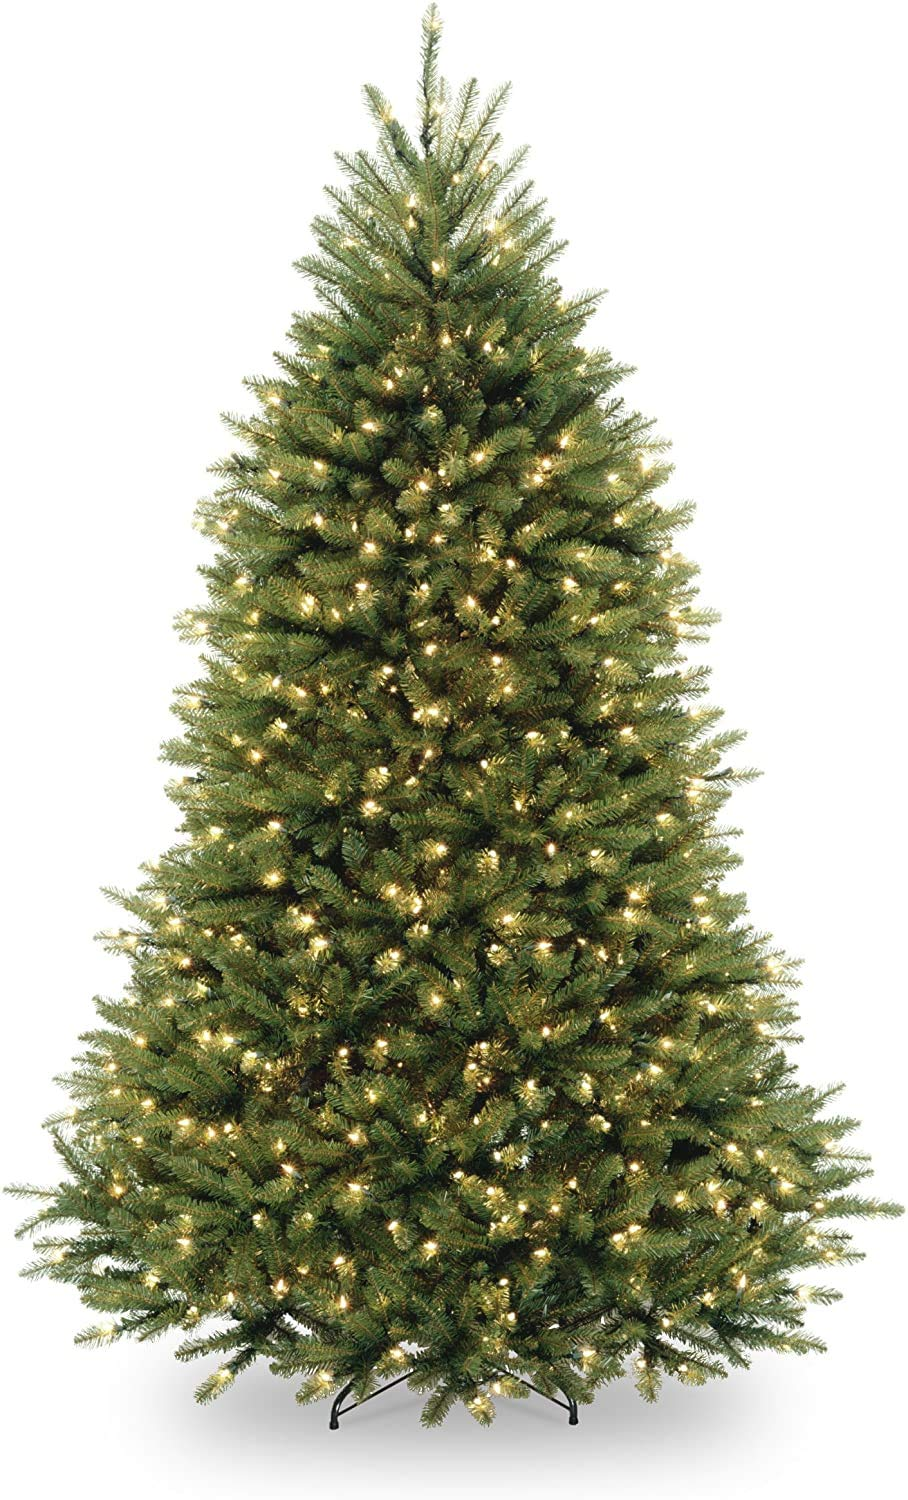 National Tree Company lit Artificial Christmas Tree Includes Pre-strung White Lights and Stand, Dunhill Fir - 6.5 ft, Green